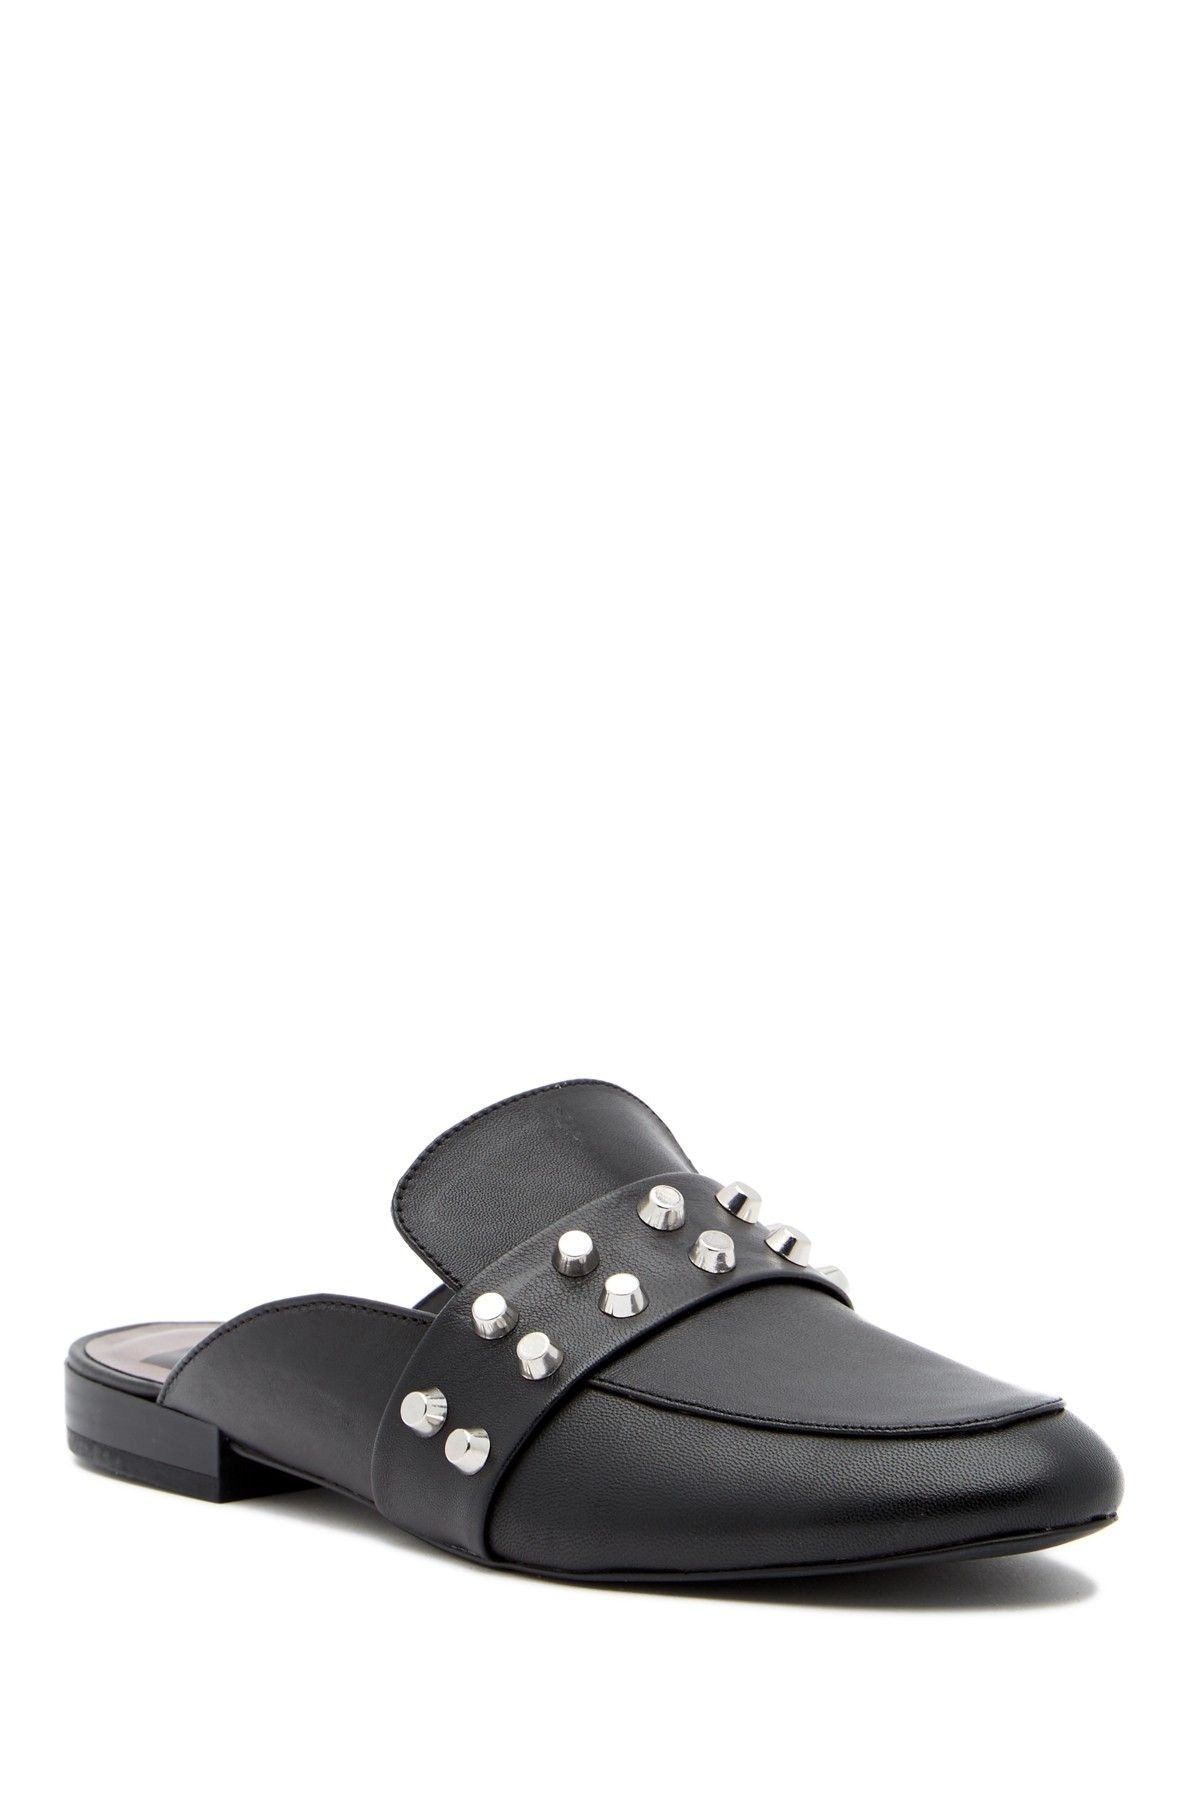 timeless design 9ccca 71a64 Dolce Vita - Candy Studded Mule is now 25% off. Free Shipping on orders